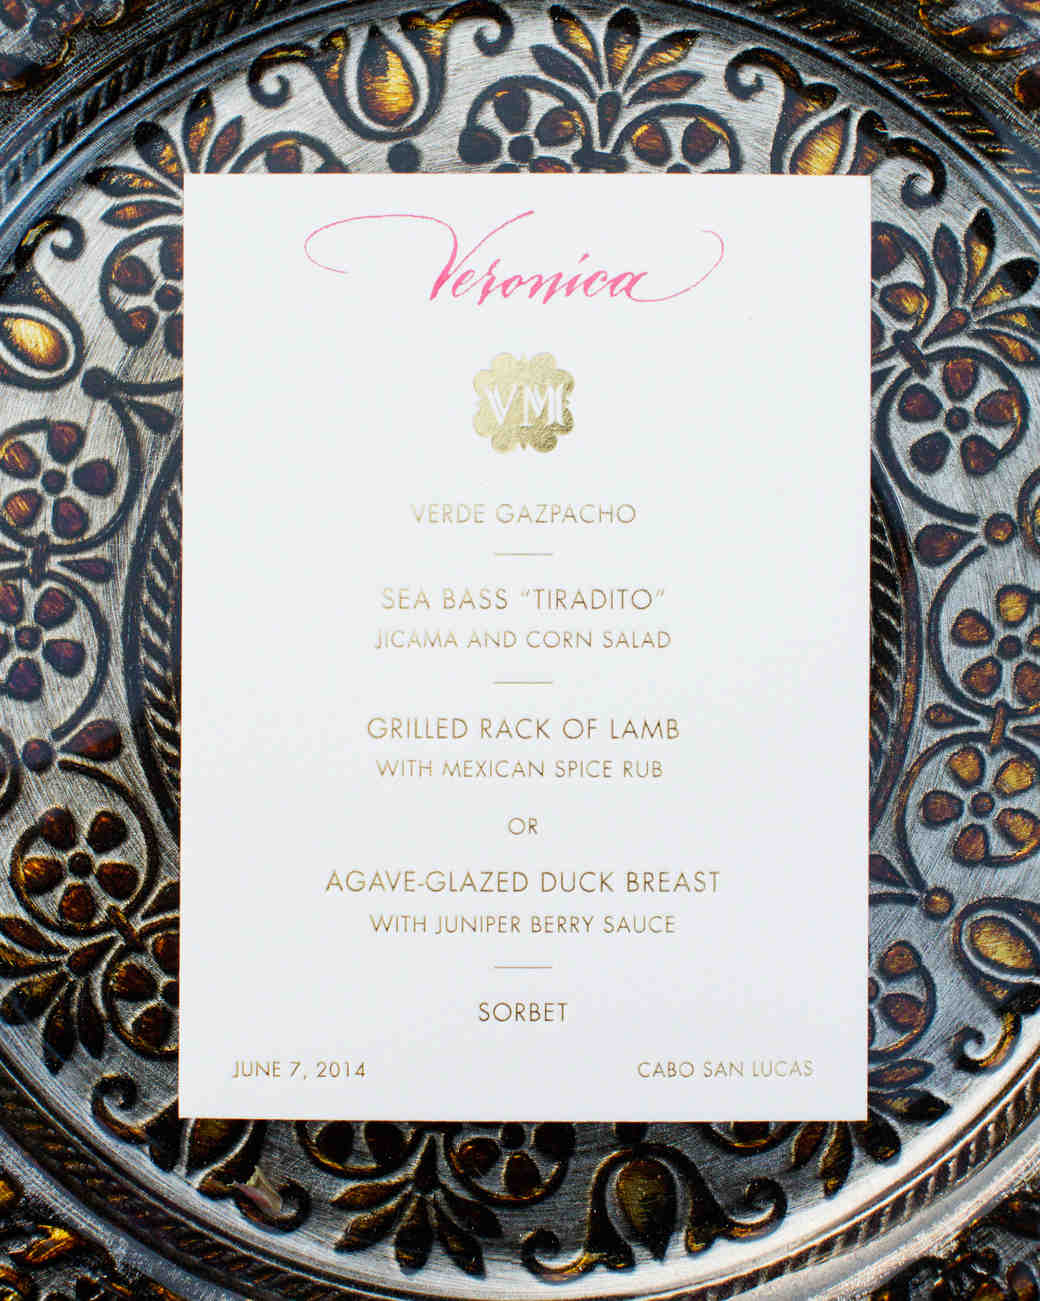 veronica-mathieu-wedding-menu-1023-s111501-1014.jpg